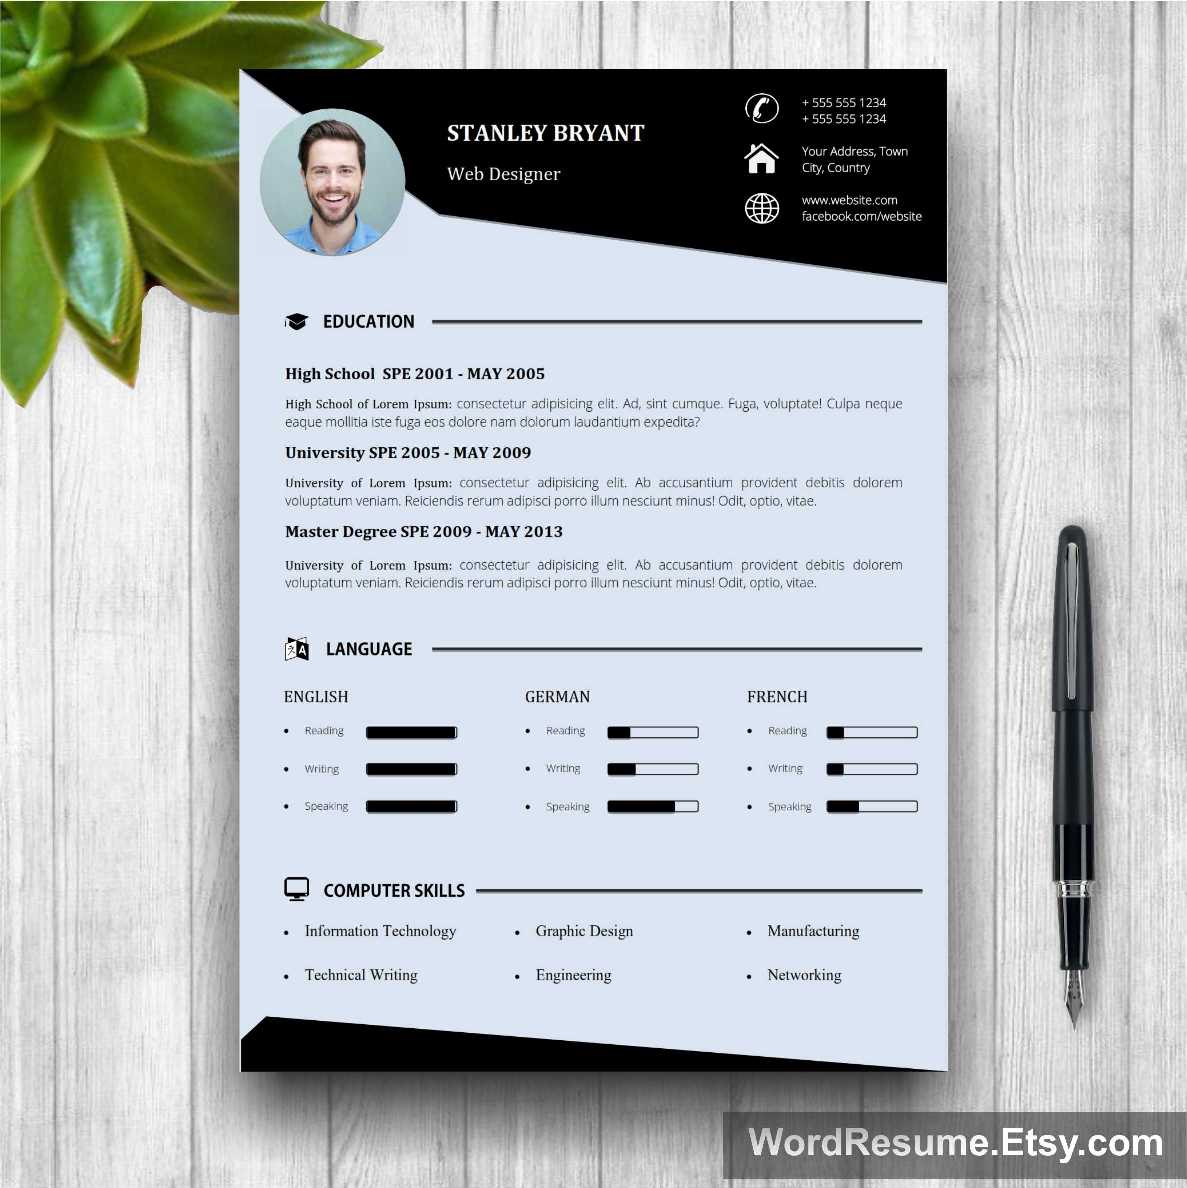 Modern Resume Template With Photo Quot Stanley Bryant